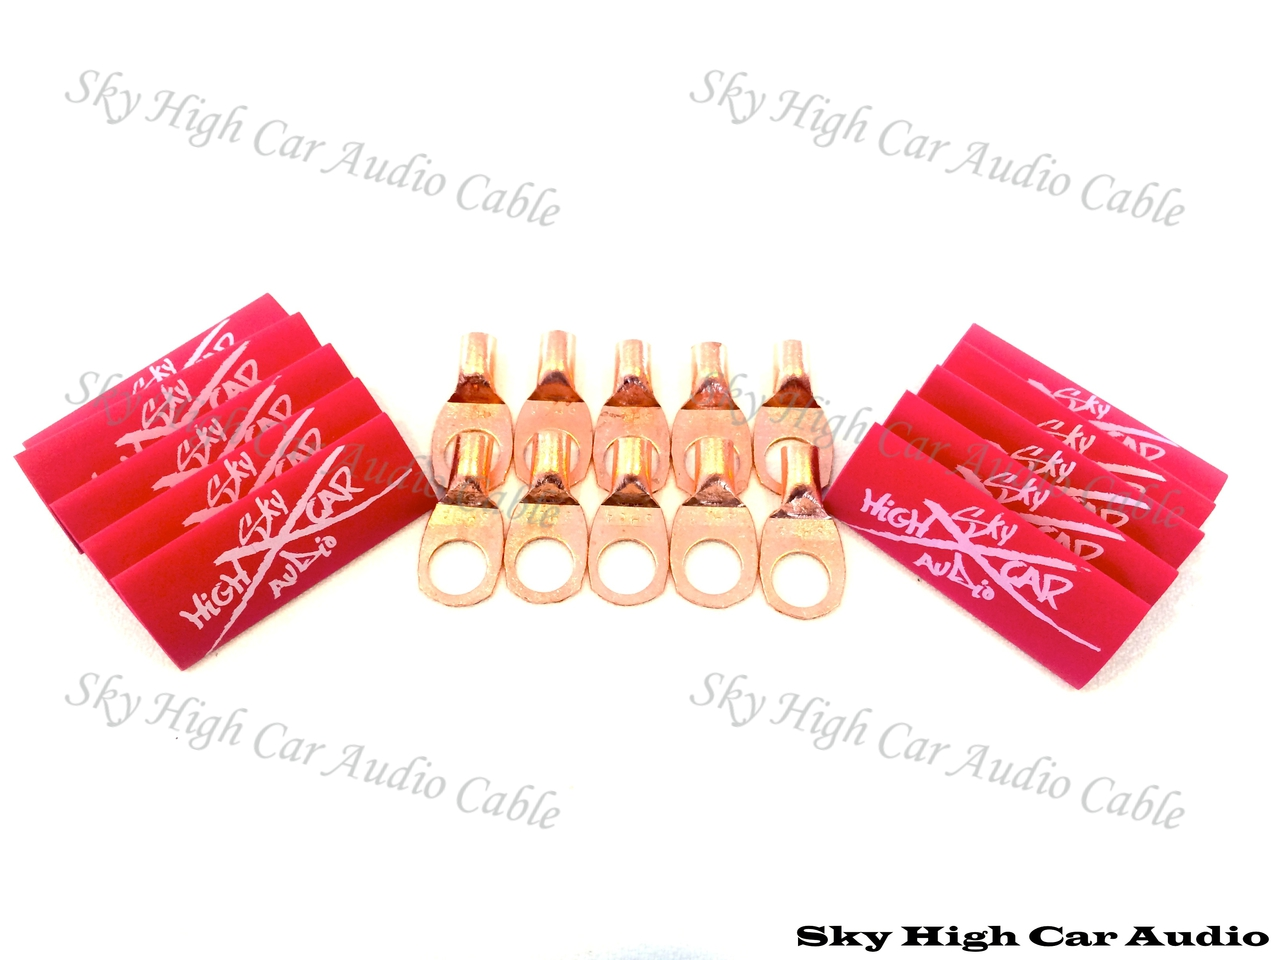 """Sky High Car Audio 8 Gauge Copper Ring Terminals (3/8"""" hole) w/ Heat Shrink Tubing - 10 Pack"""